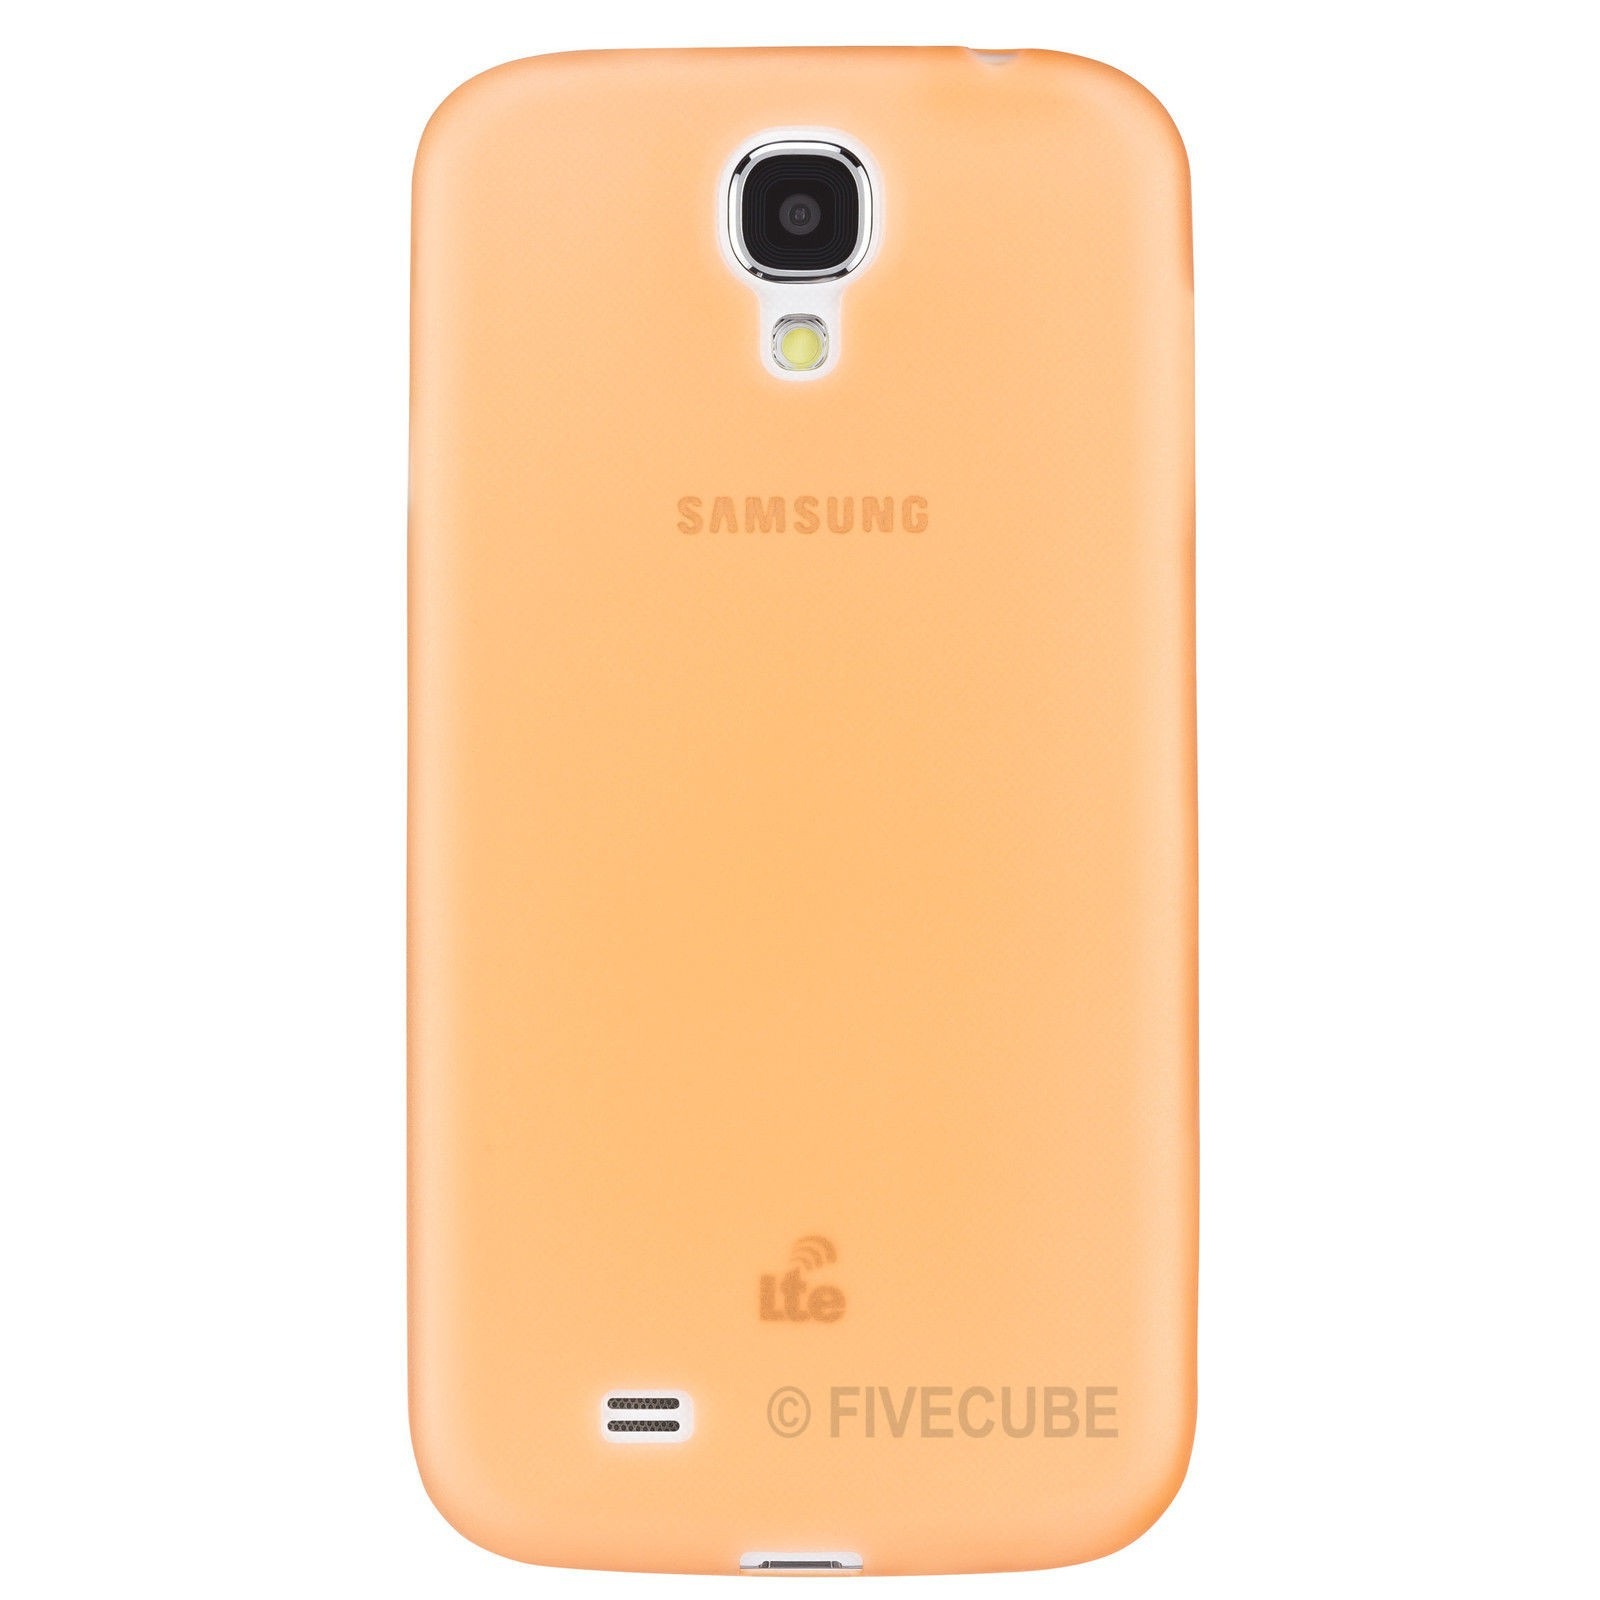 Yemota Pro Galaxy S4 Slim Case - Orange